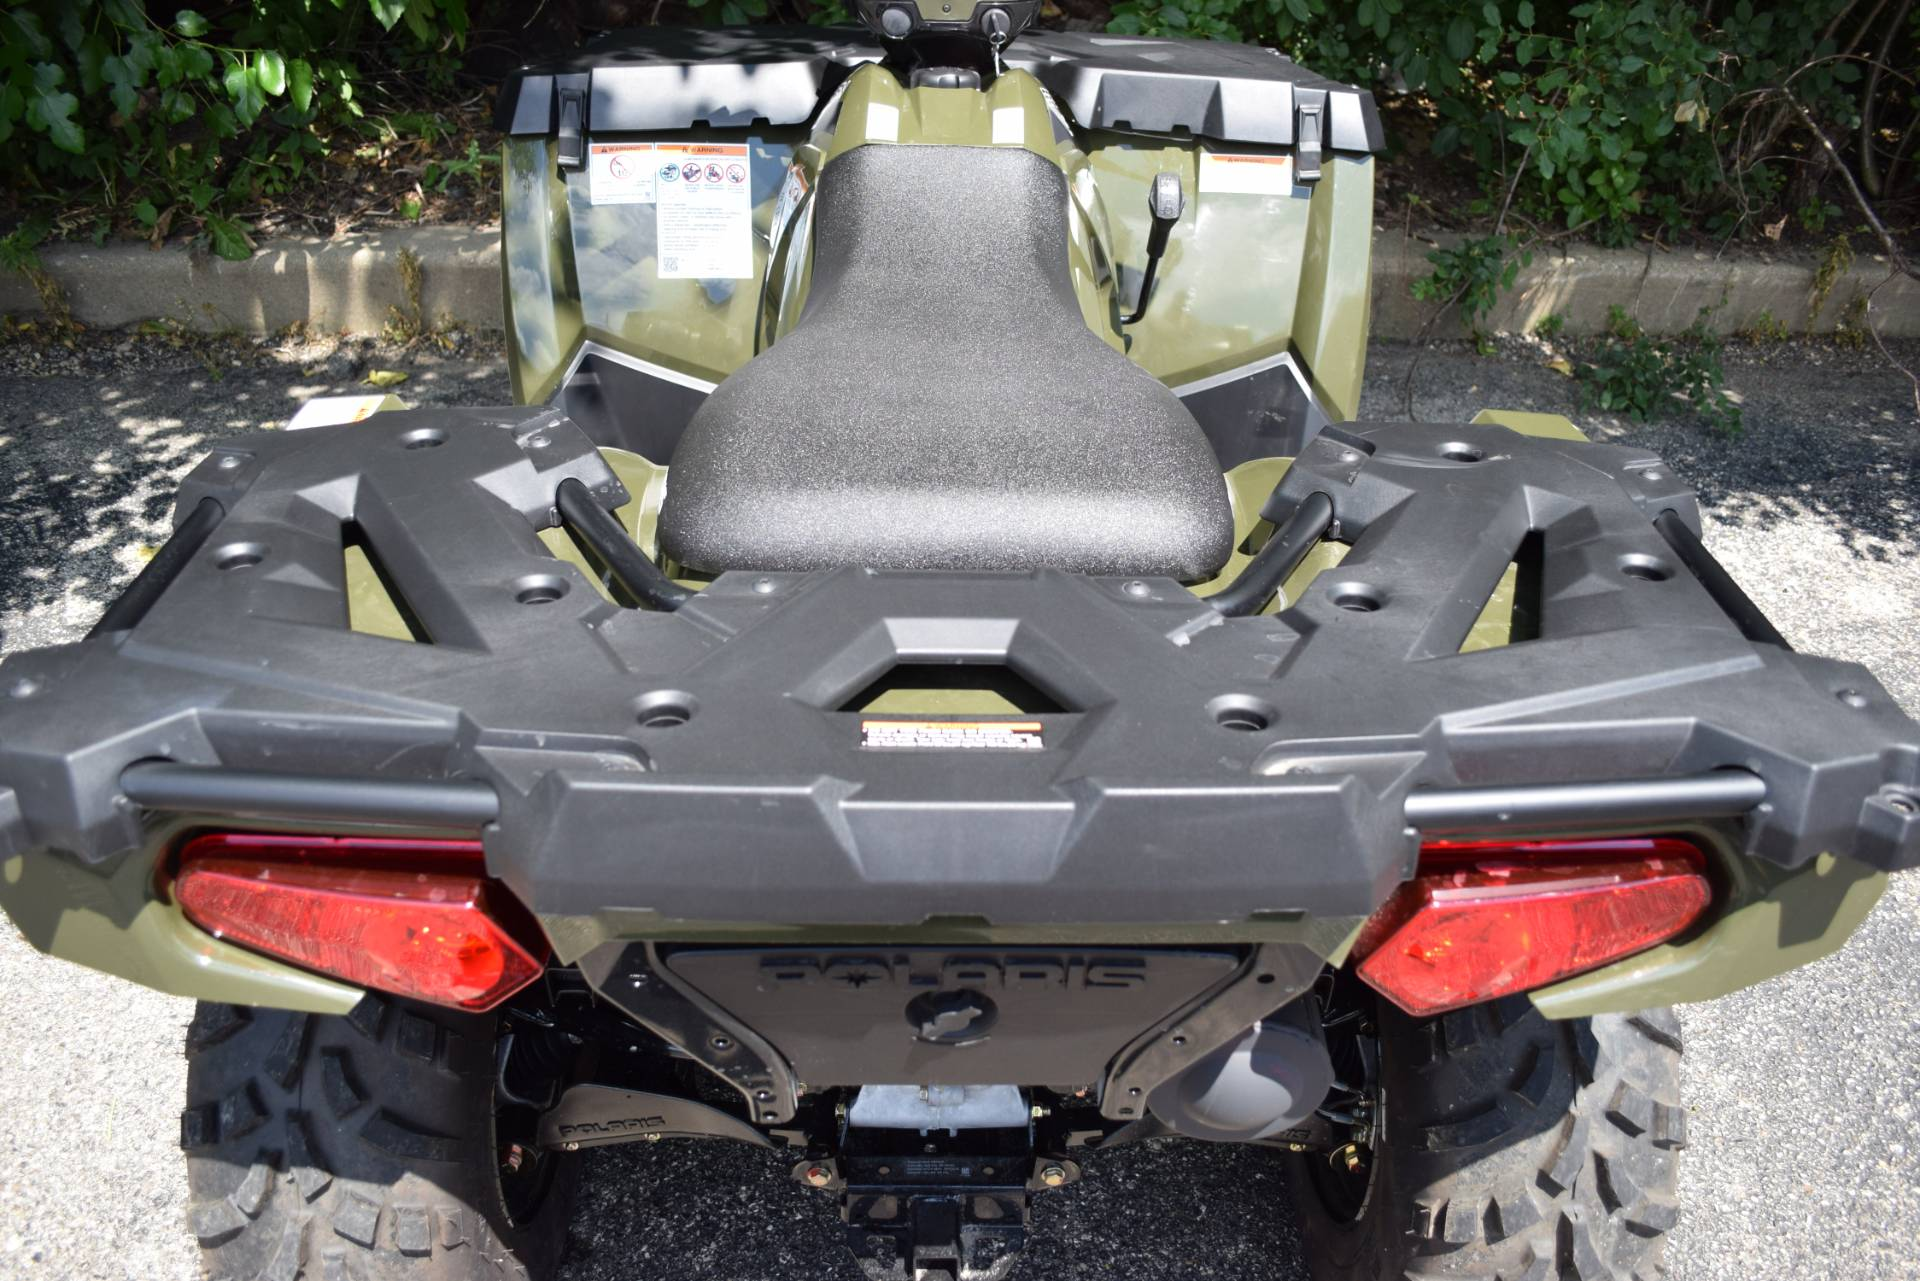 2016 Polaris Sportsman 570 in Wauconda, Illinois - Photo 31